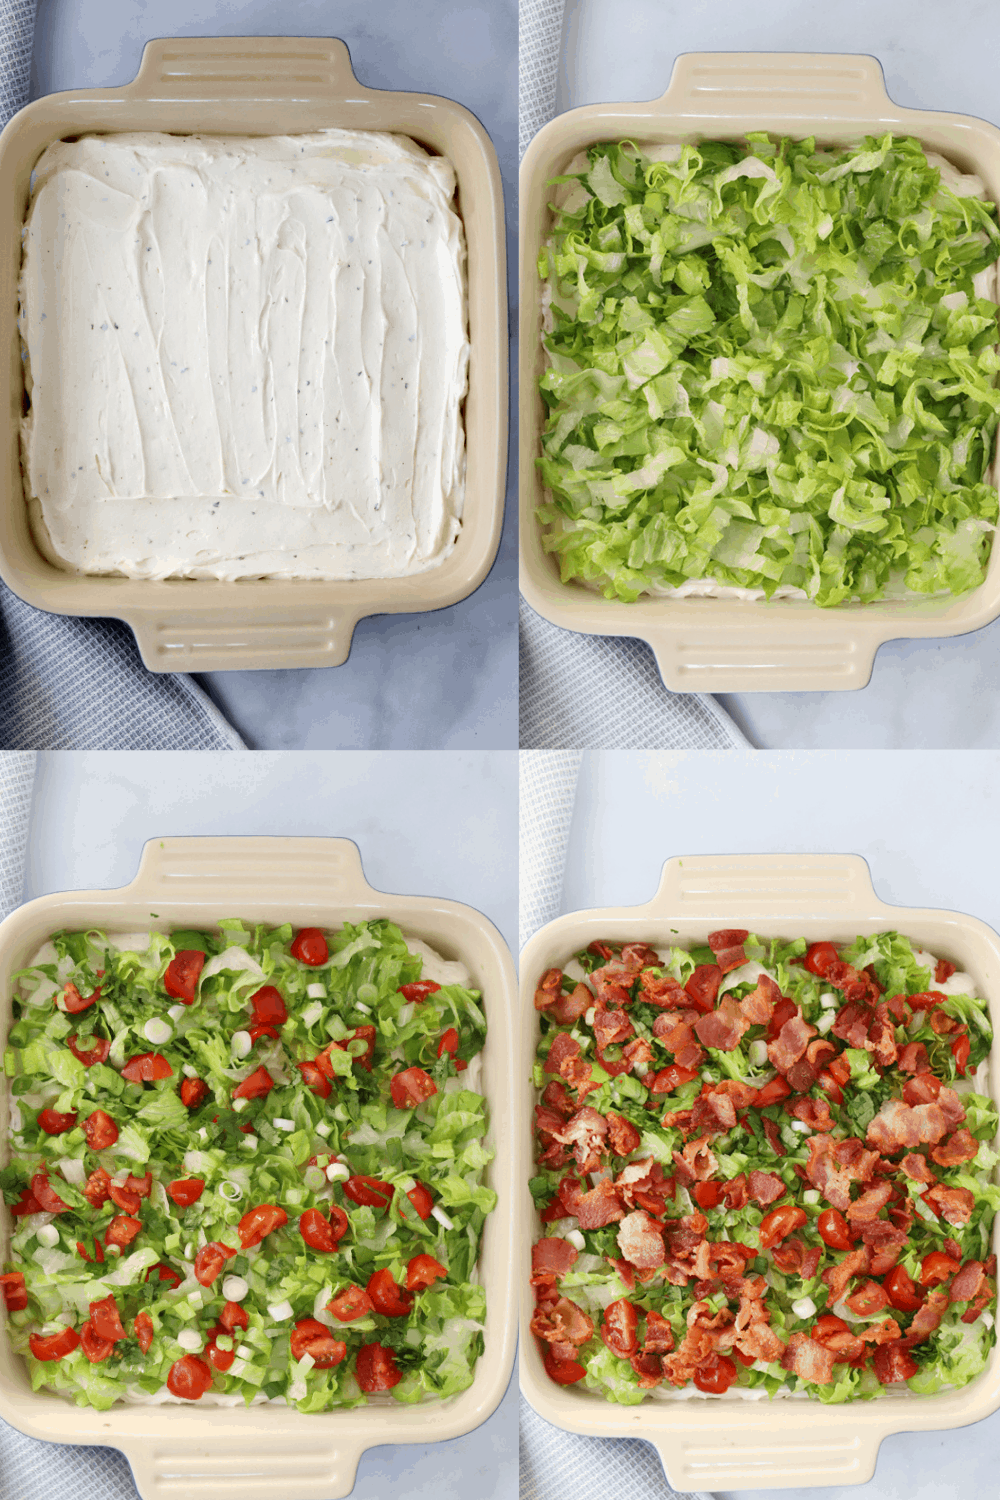 Four photos showing the steps to building BLT Dip in a baking dish.